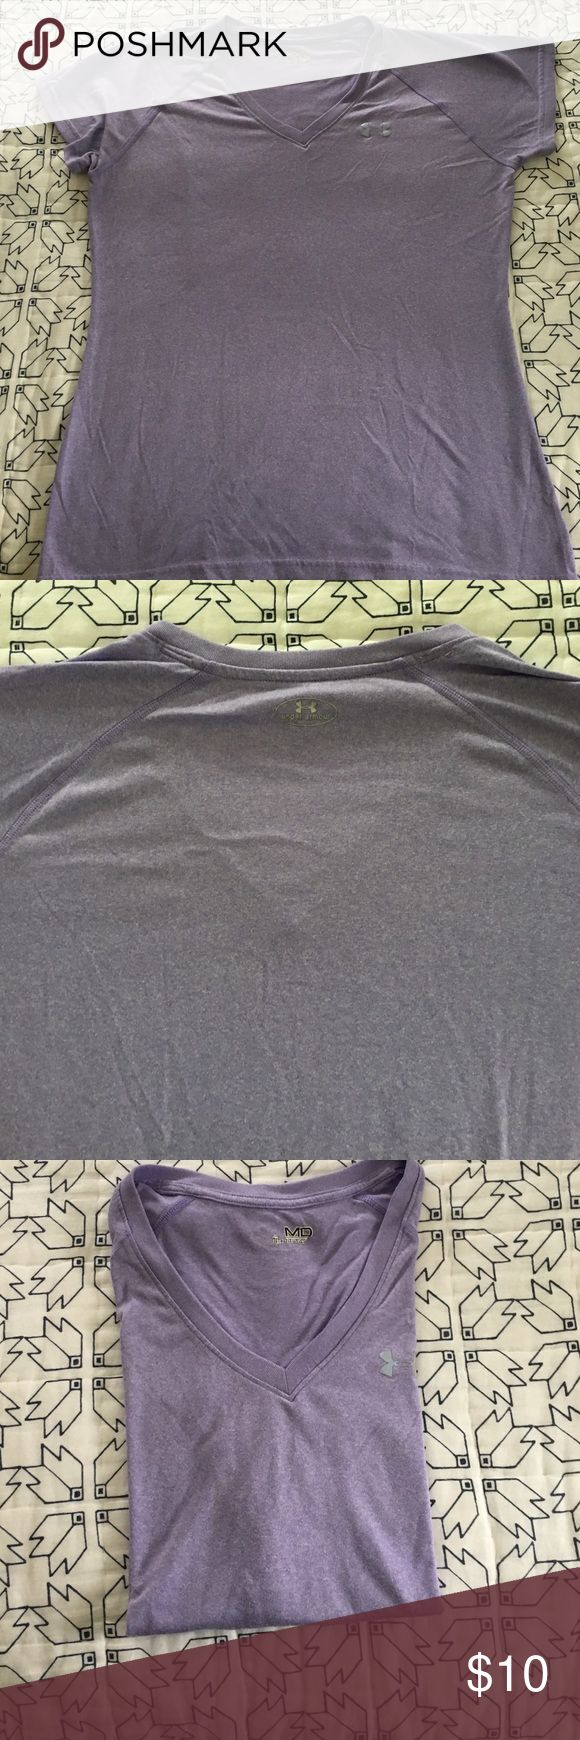 Under armou t shirt Gym top under armou Under Armour Tops Tees - Short Sleeve